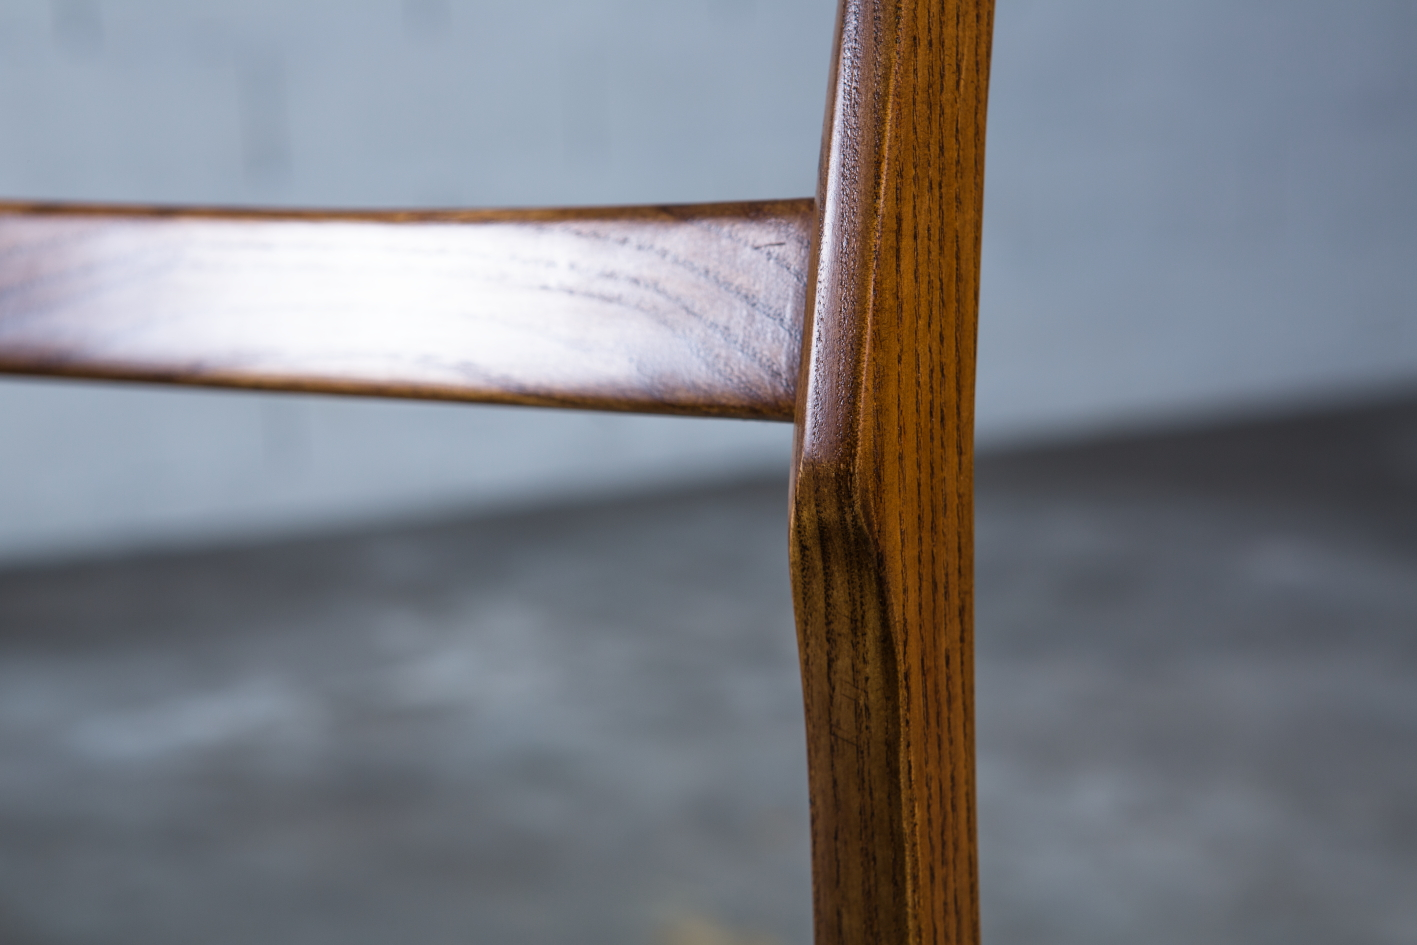 Rare set of 14 chairs for the ''Parco dei Principi'' Hotel - Gio Ponti for Cassina 1965 - Carved frame detail